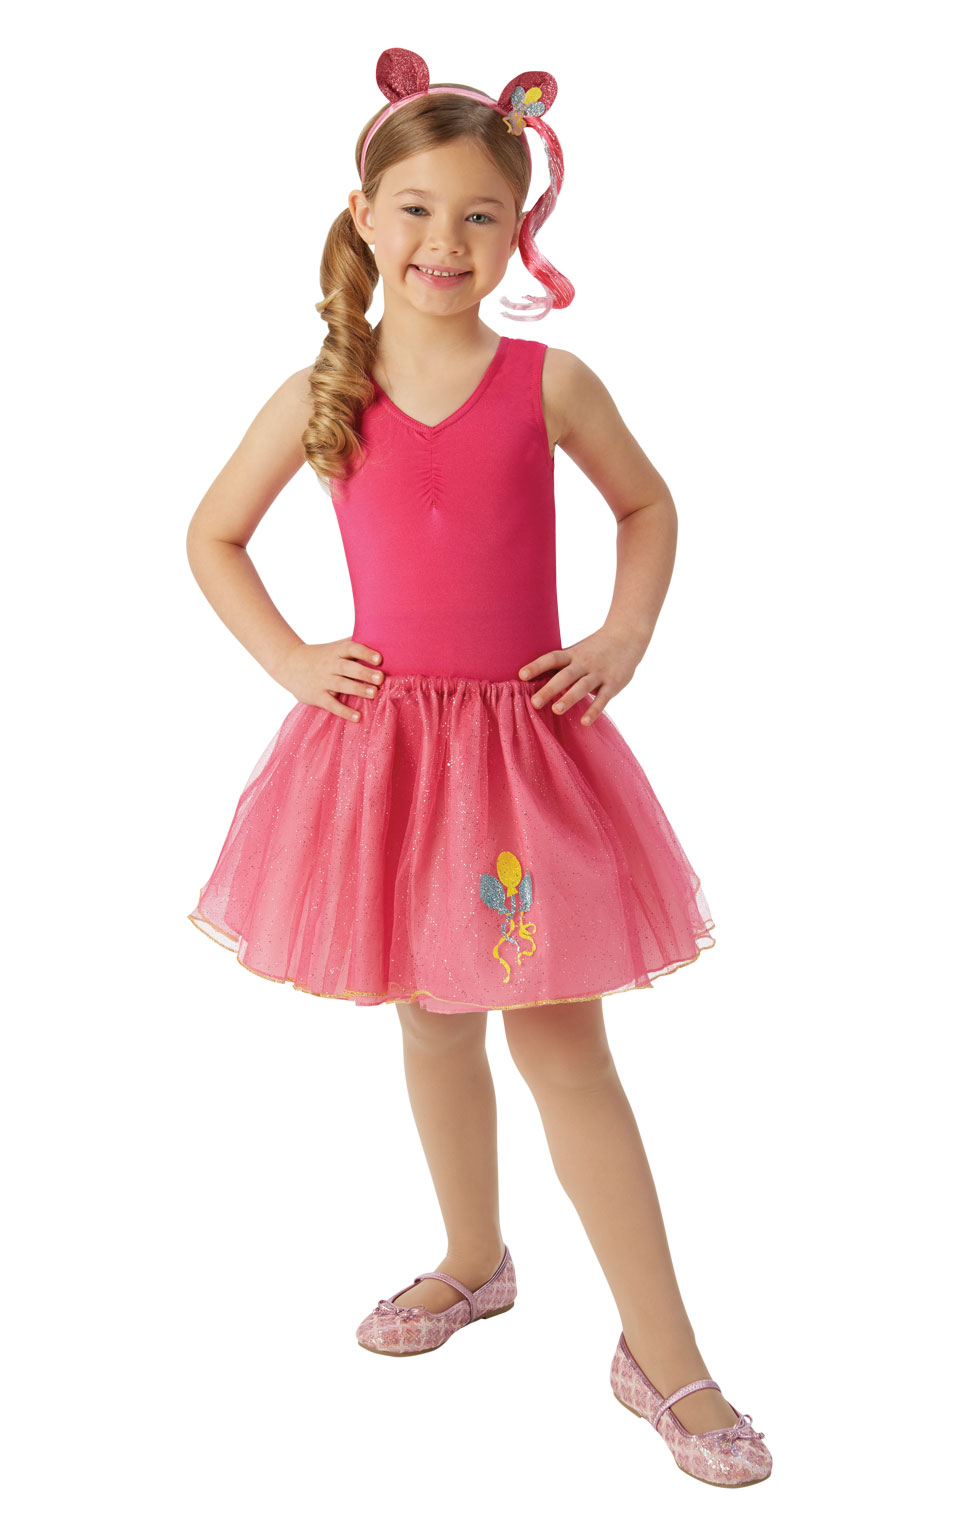 My Little Pony: Pinkie Pie - Tutu set